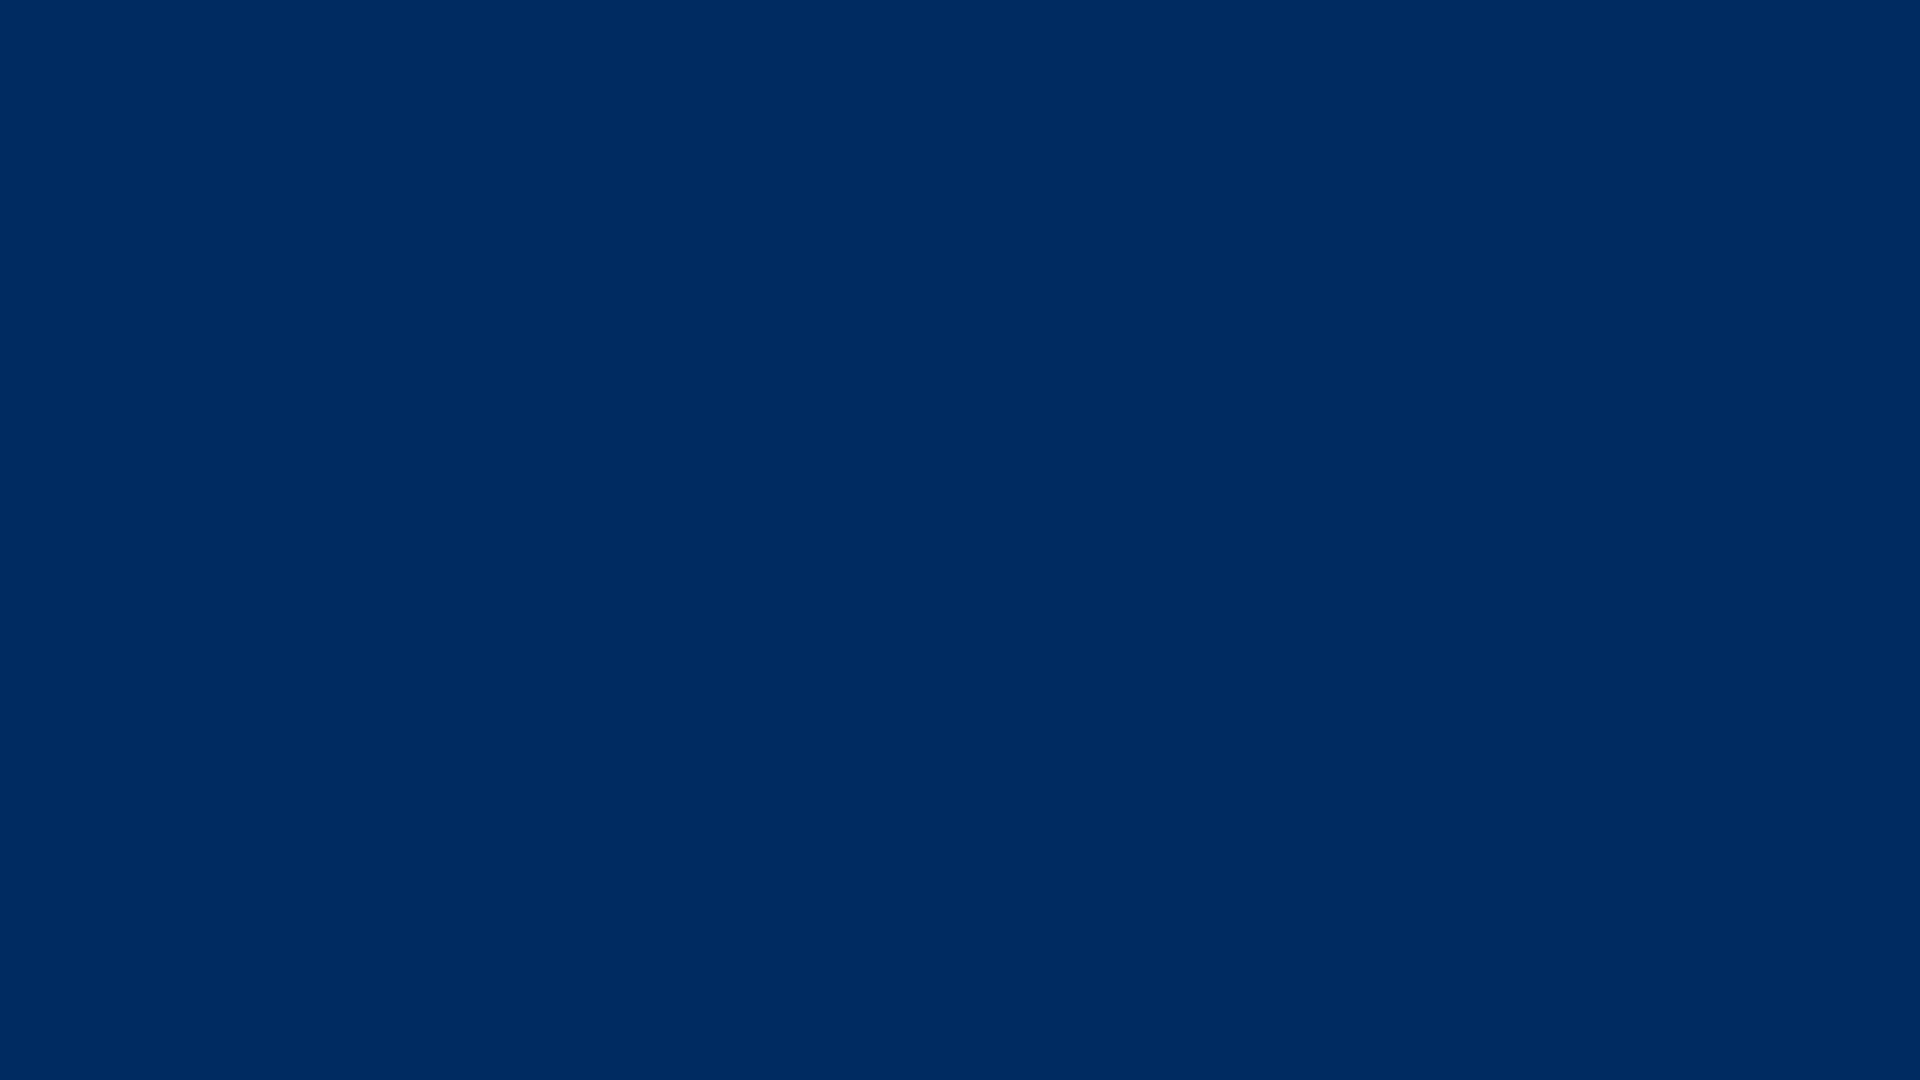 Indianapolis Colts Team Color Scheme Brand And Logo